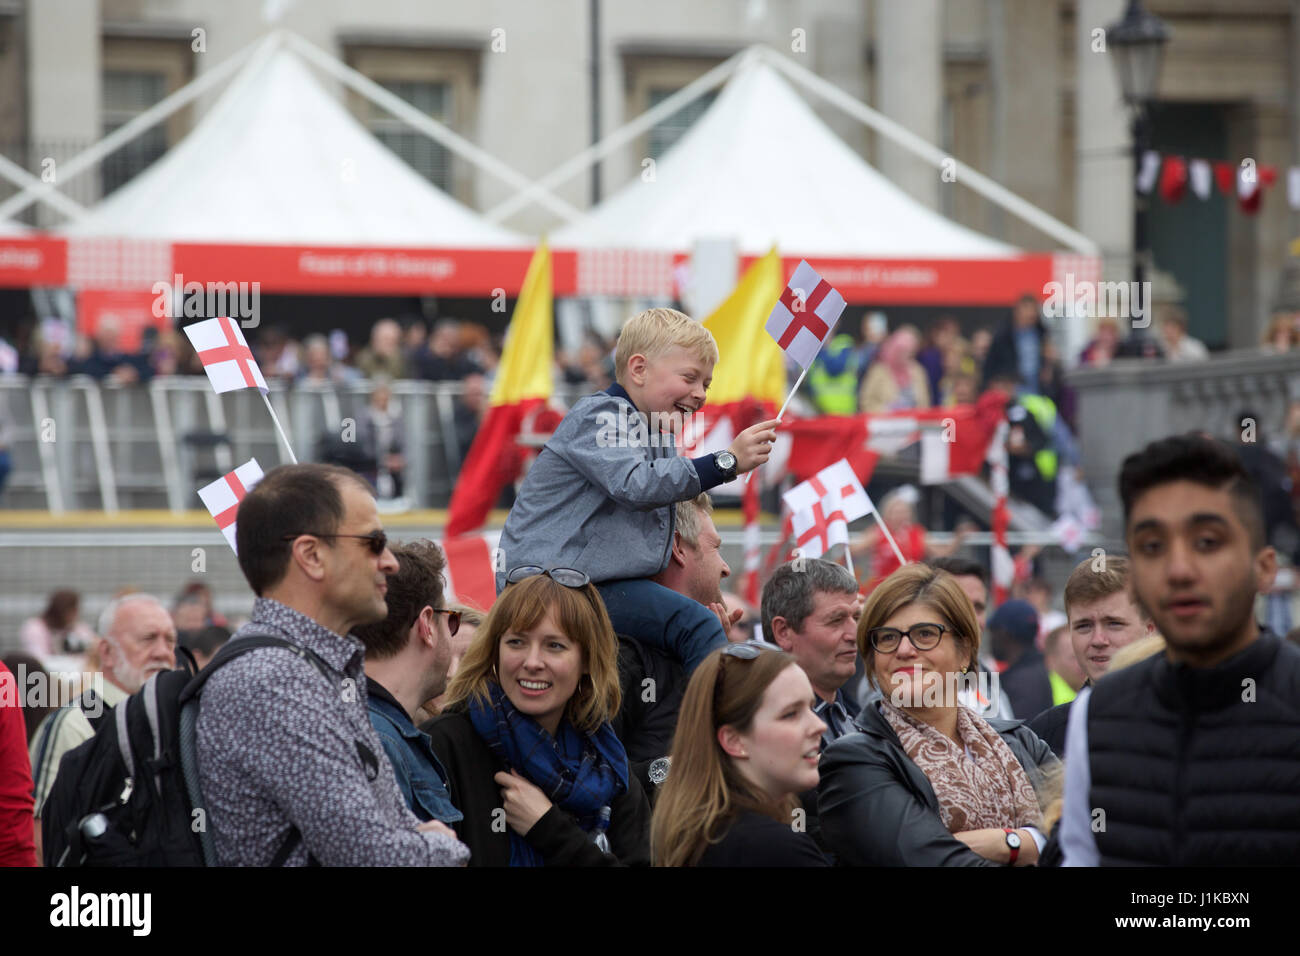 Trafalgar Square,UK,22nd April 2017,Crowds enjoy the The Annual Feast of St George celebrations which took place - Stock Image